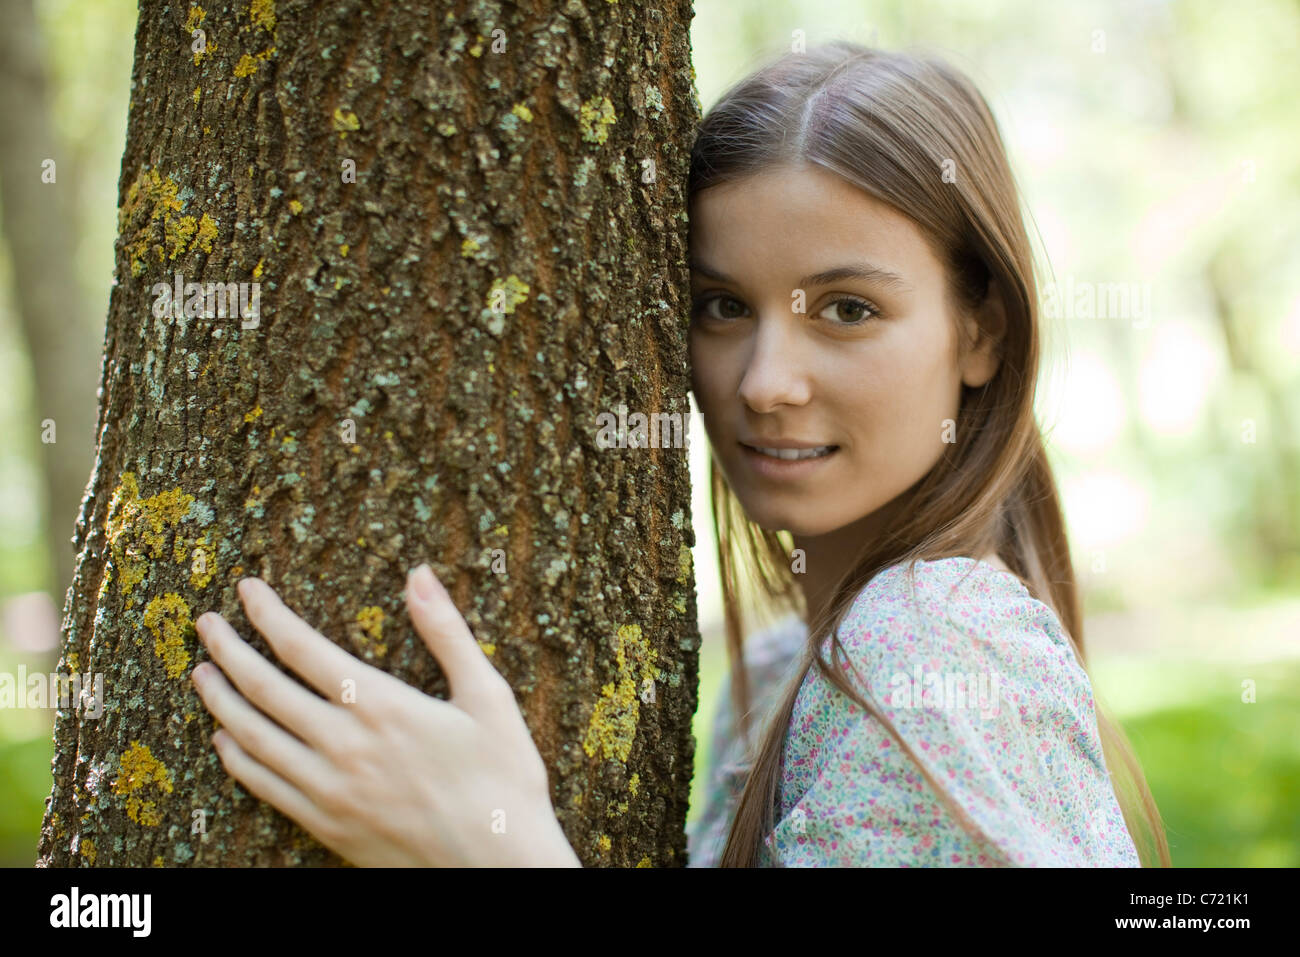 Young woman hugging tree, portrait - Stock Image